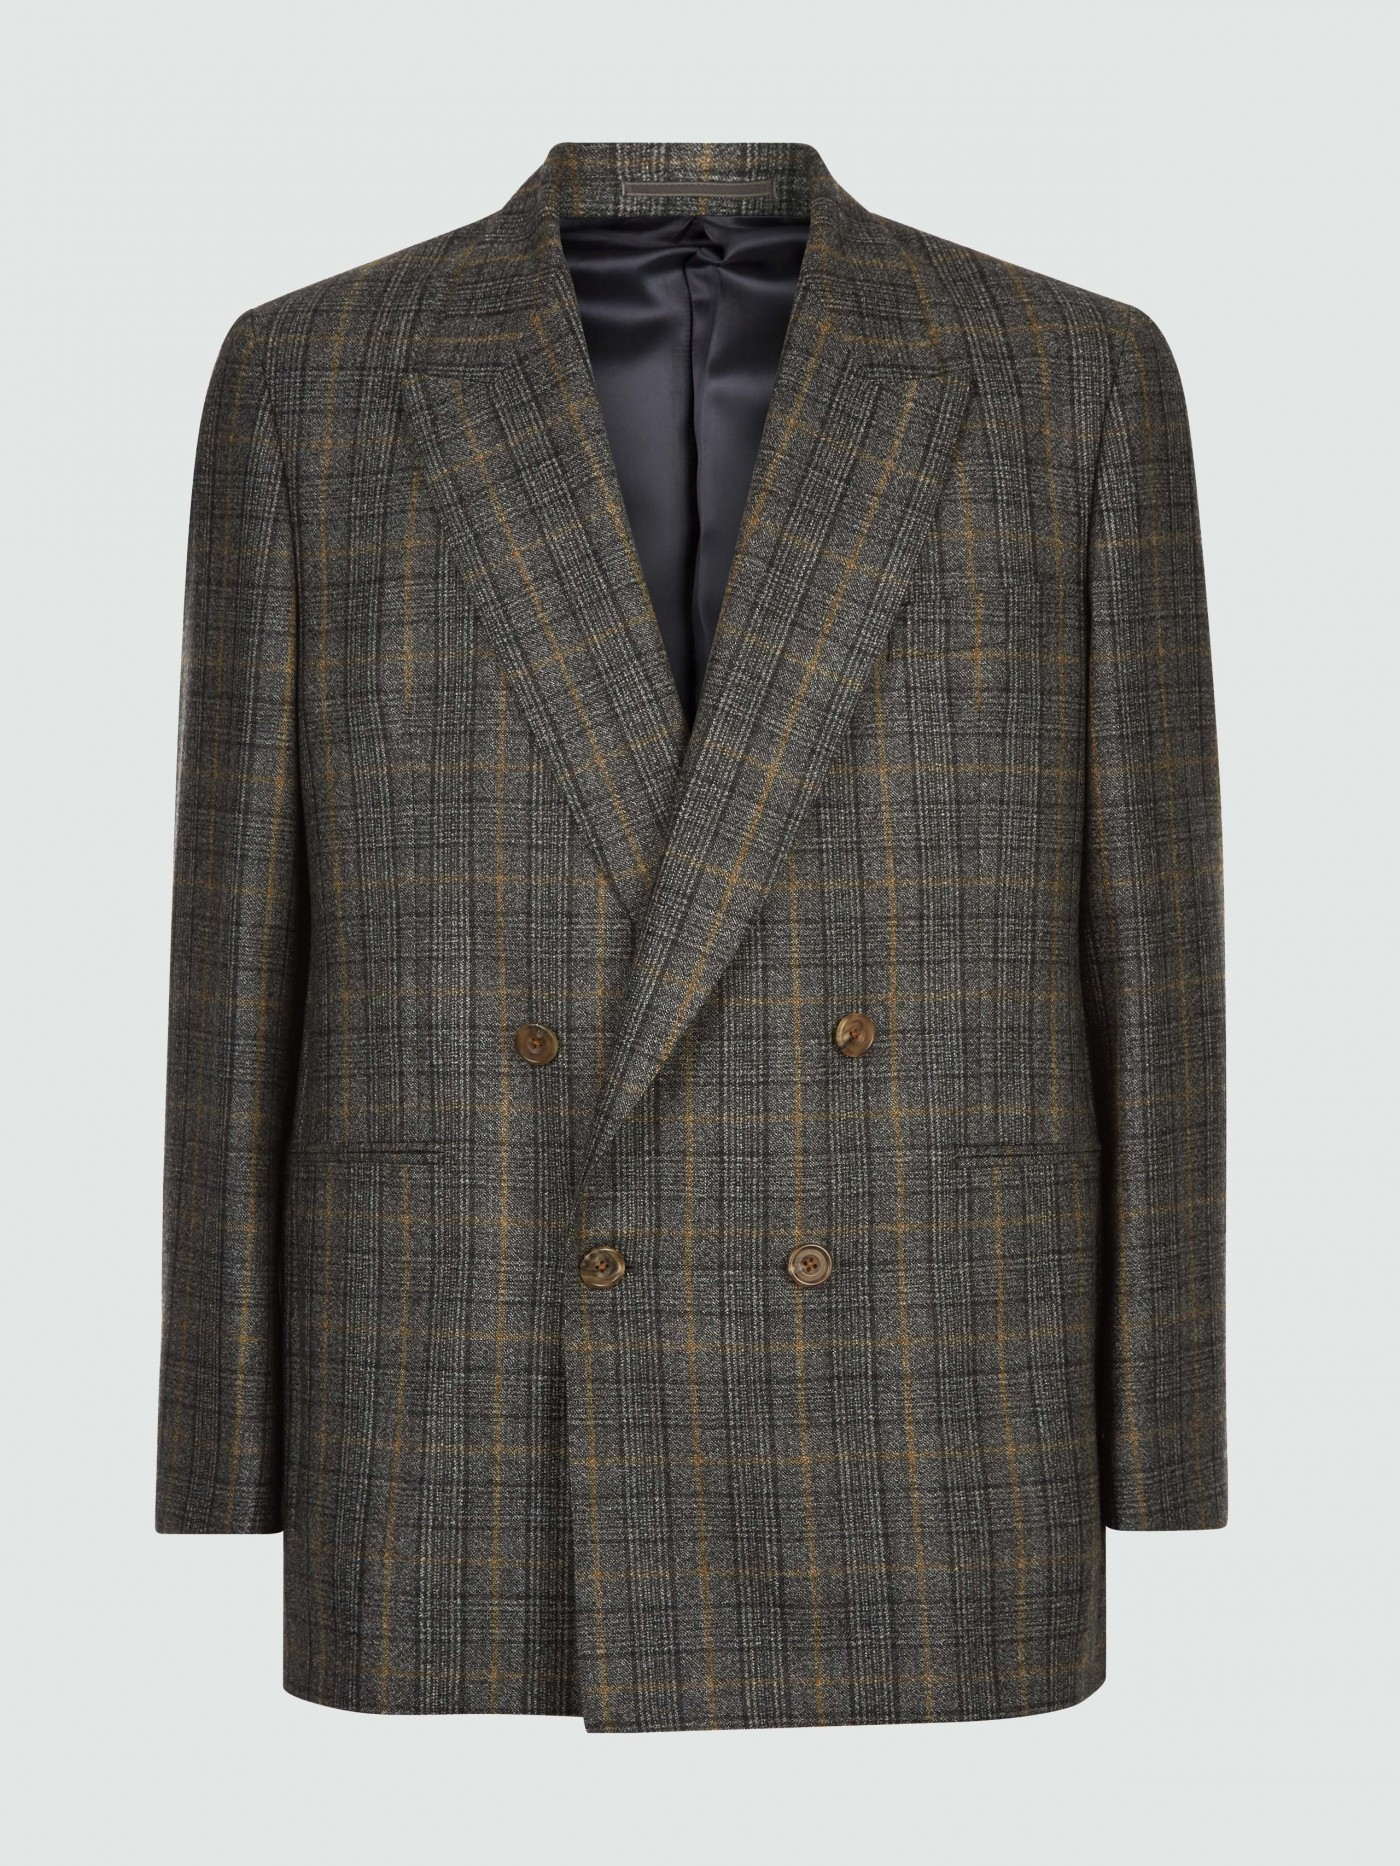 E. Tautz Charcoal Glen Plaid Check Double Breasted Jacket